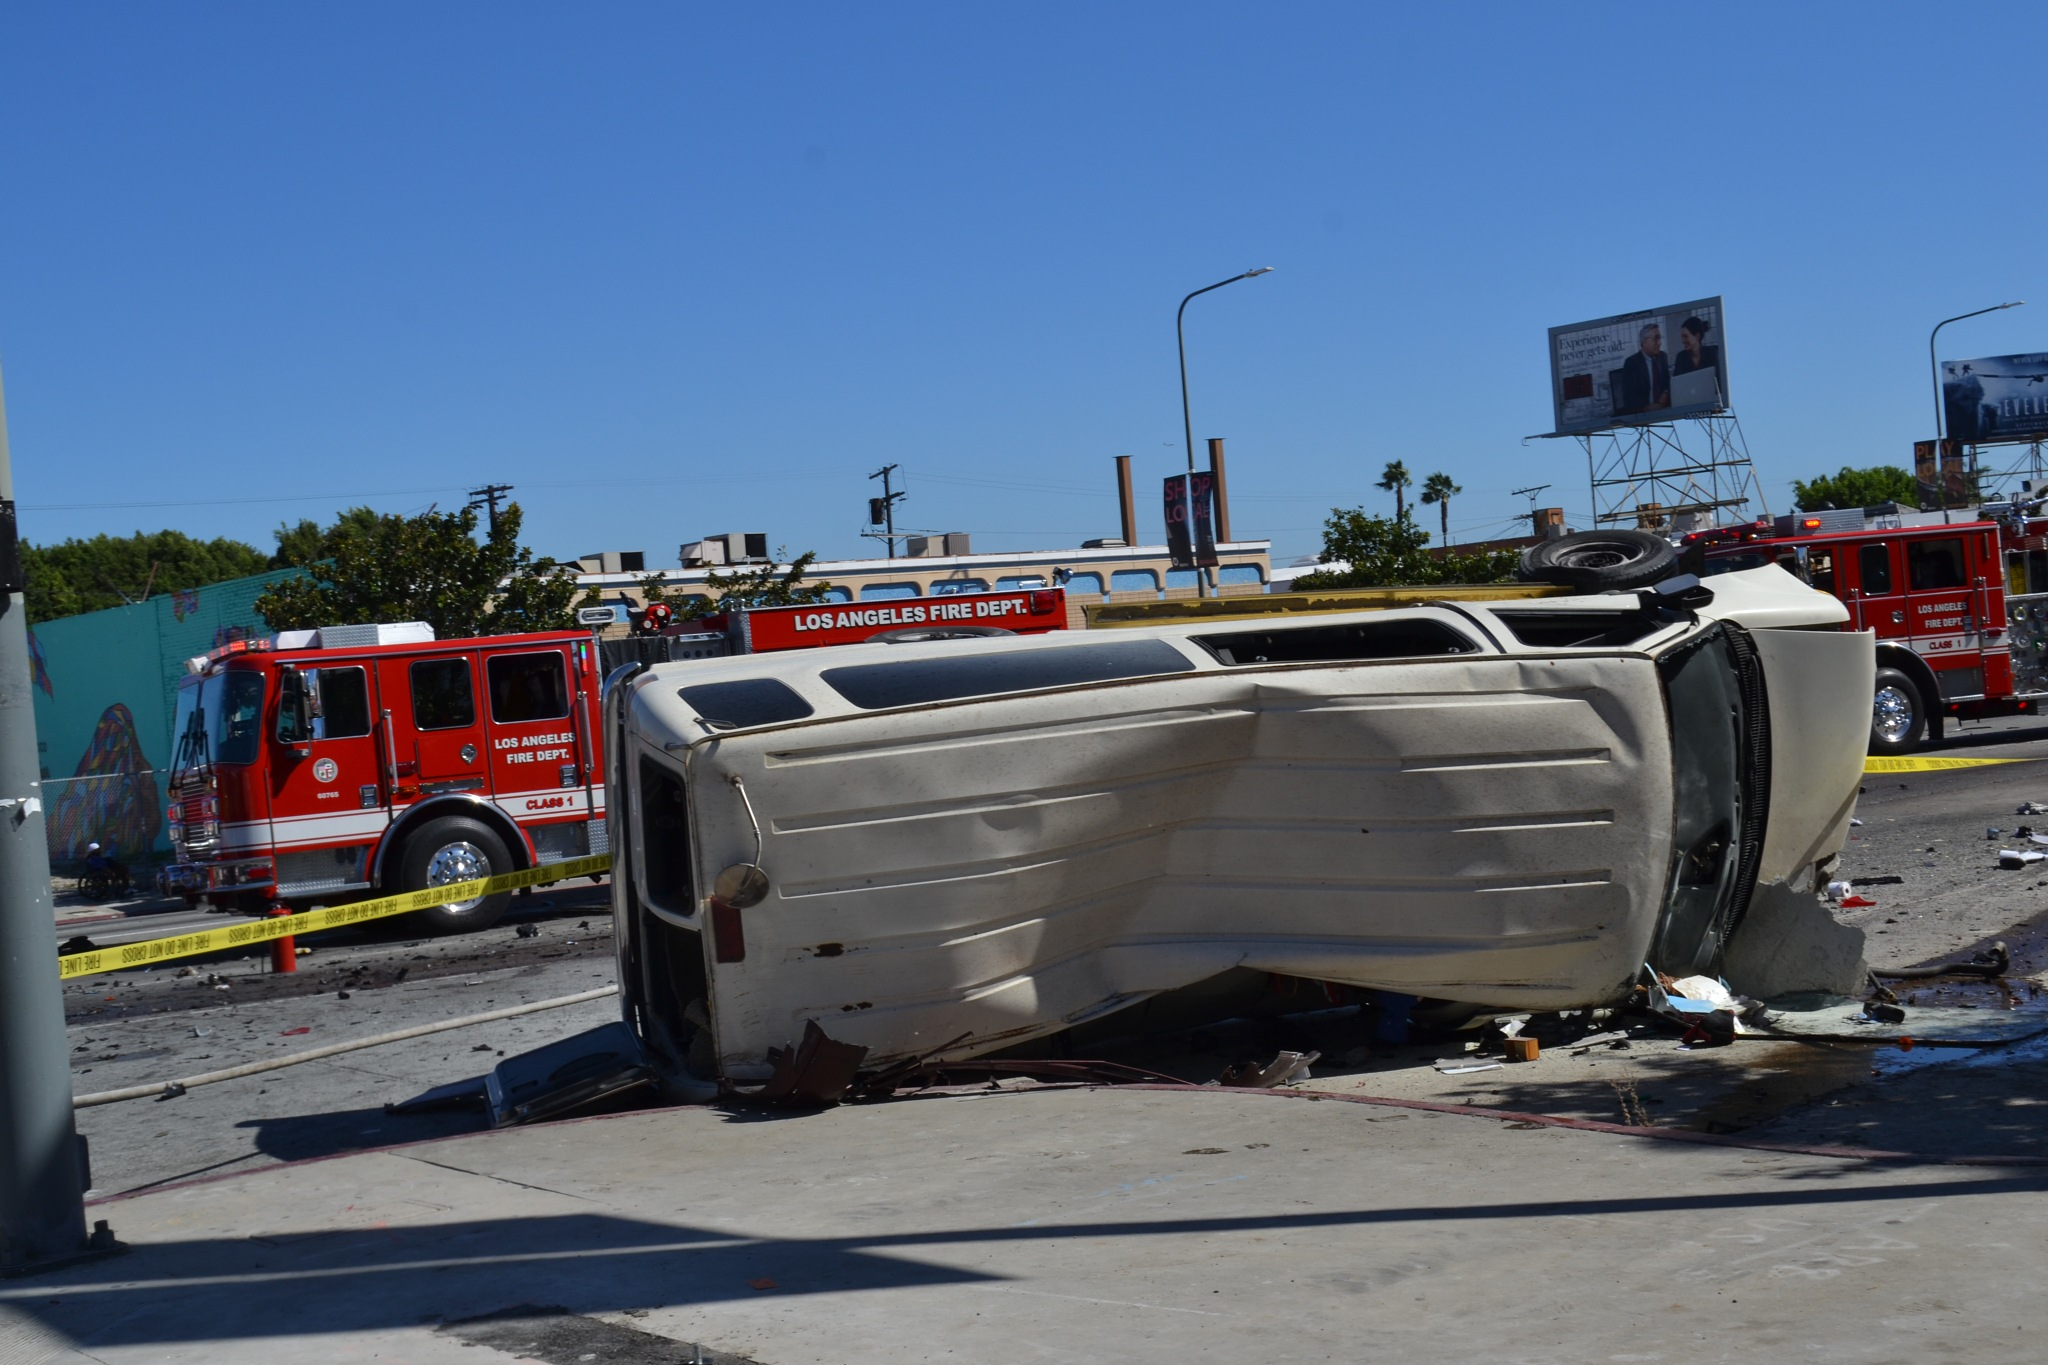 Vehicular Carnage Down on Crenshaw - Wrong way driver by BC - atomic hot links